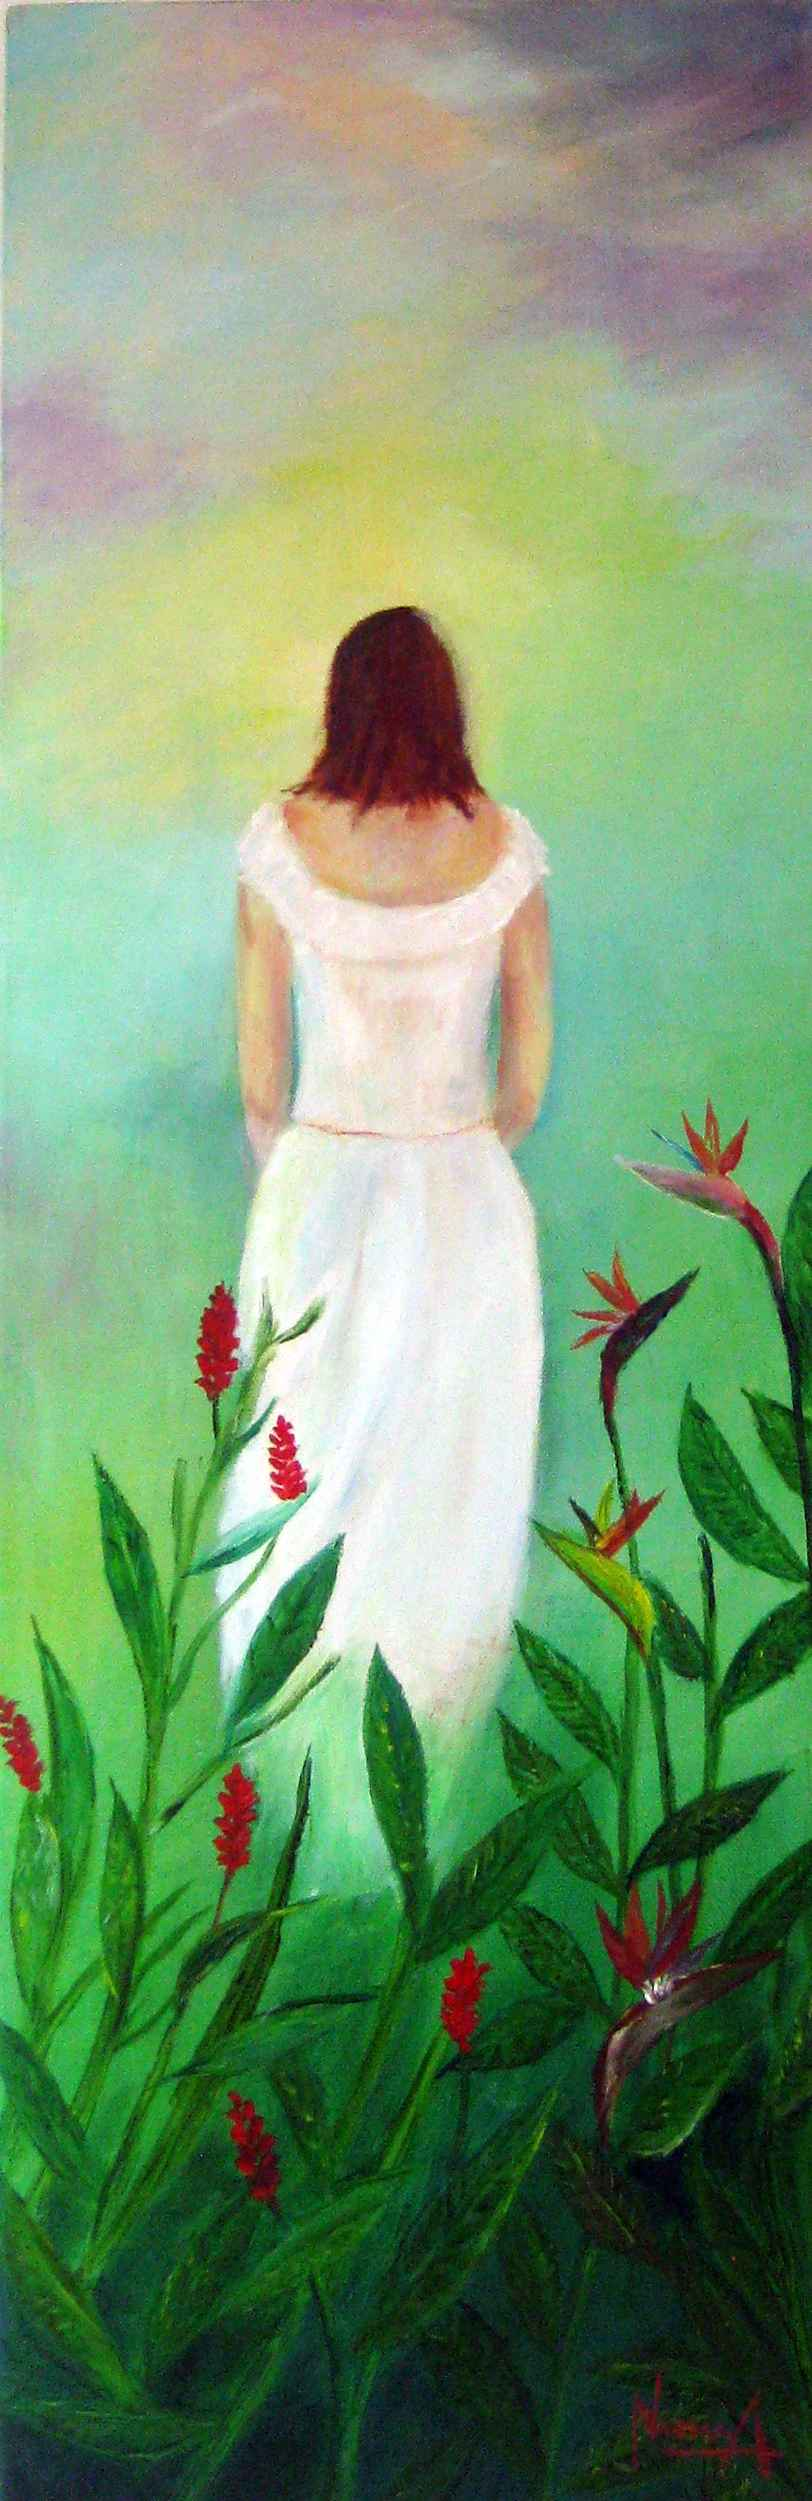 Serenity by  Norma Farmer - Masterpiece Online